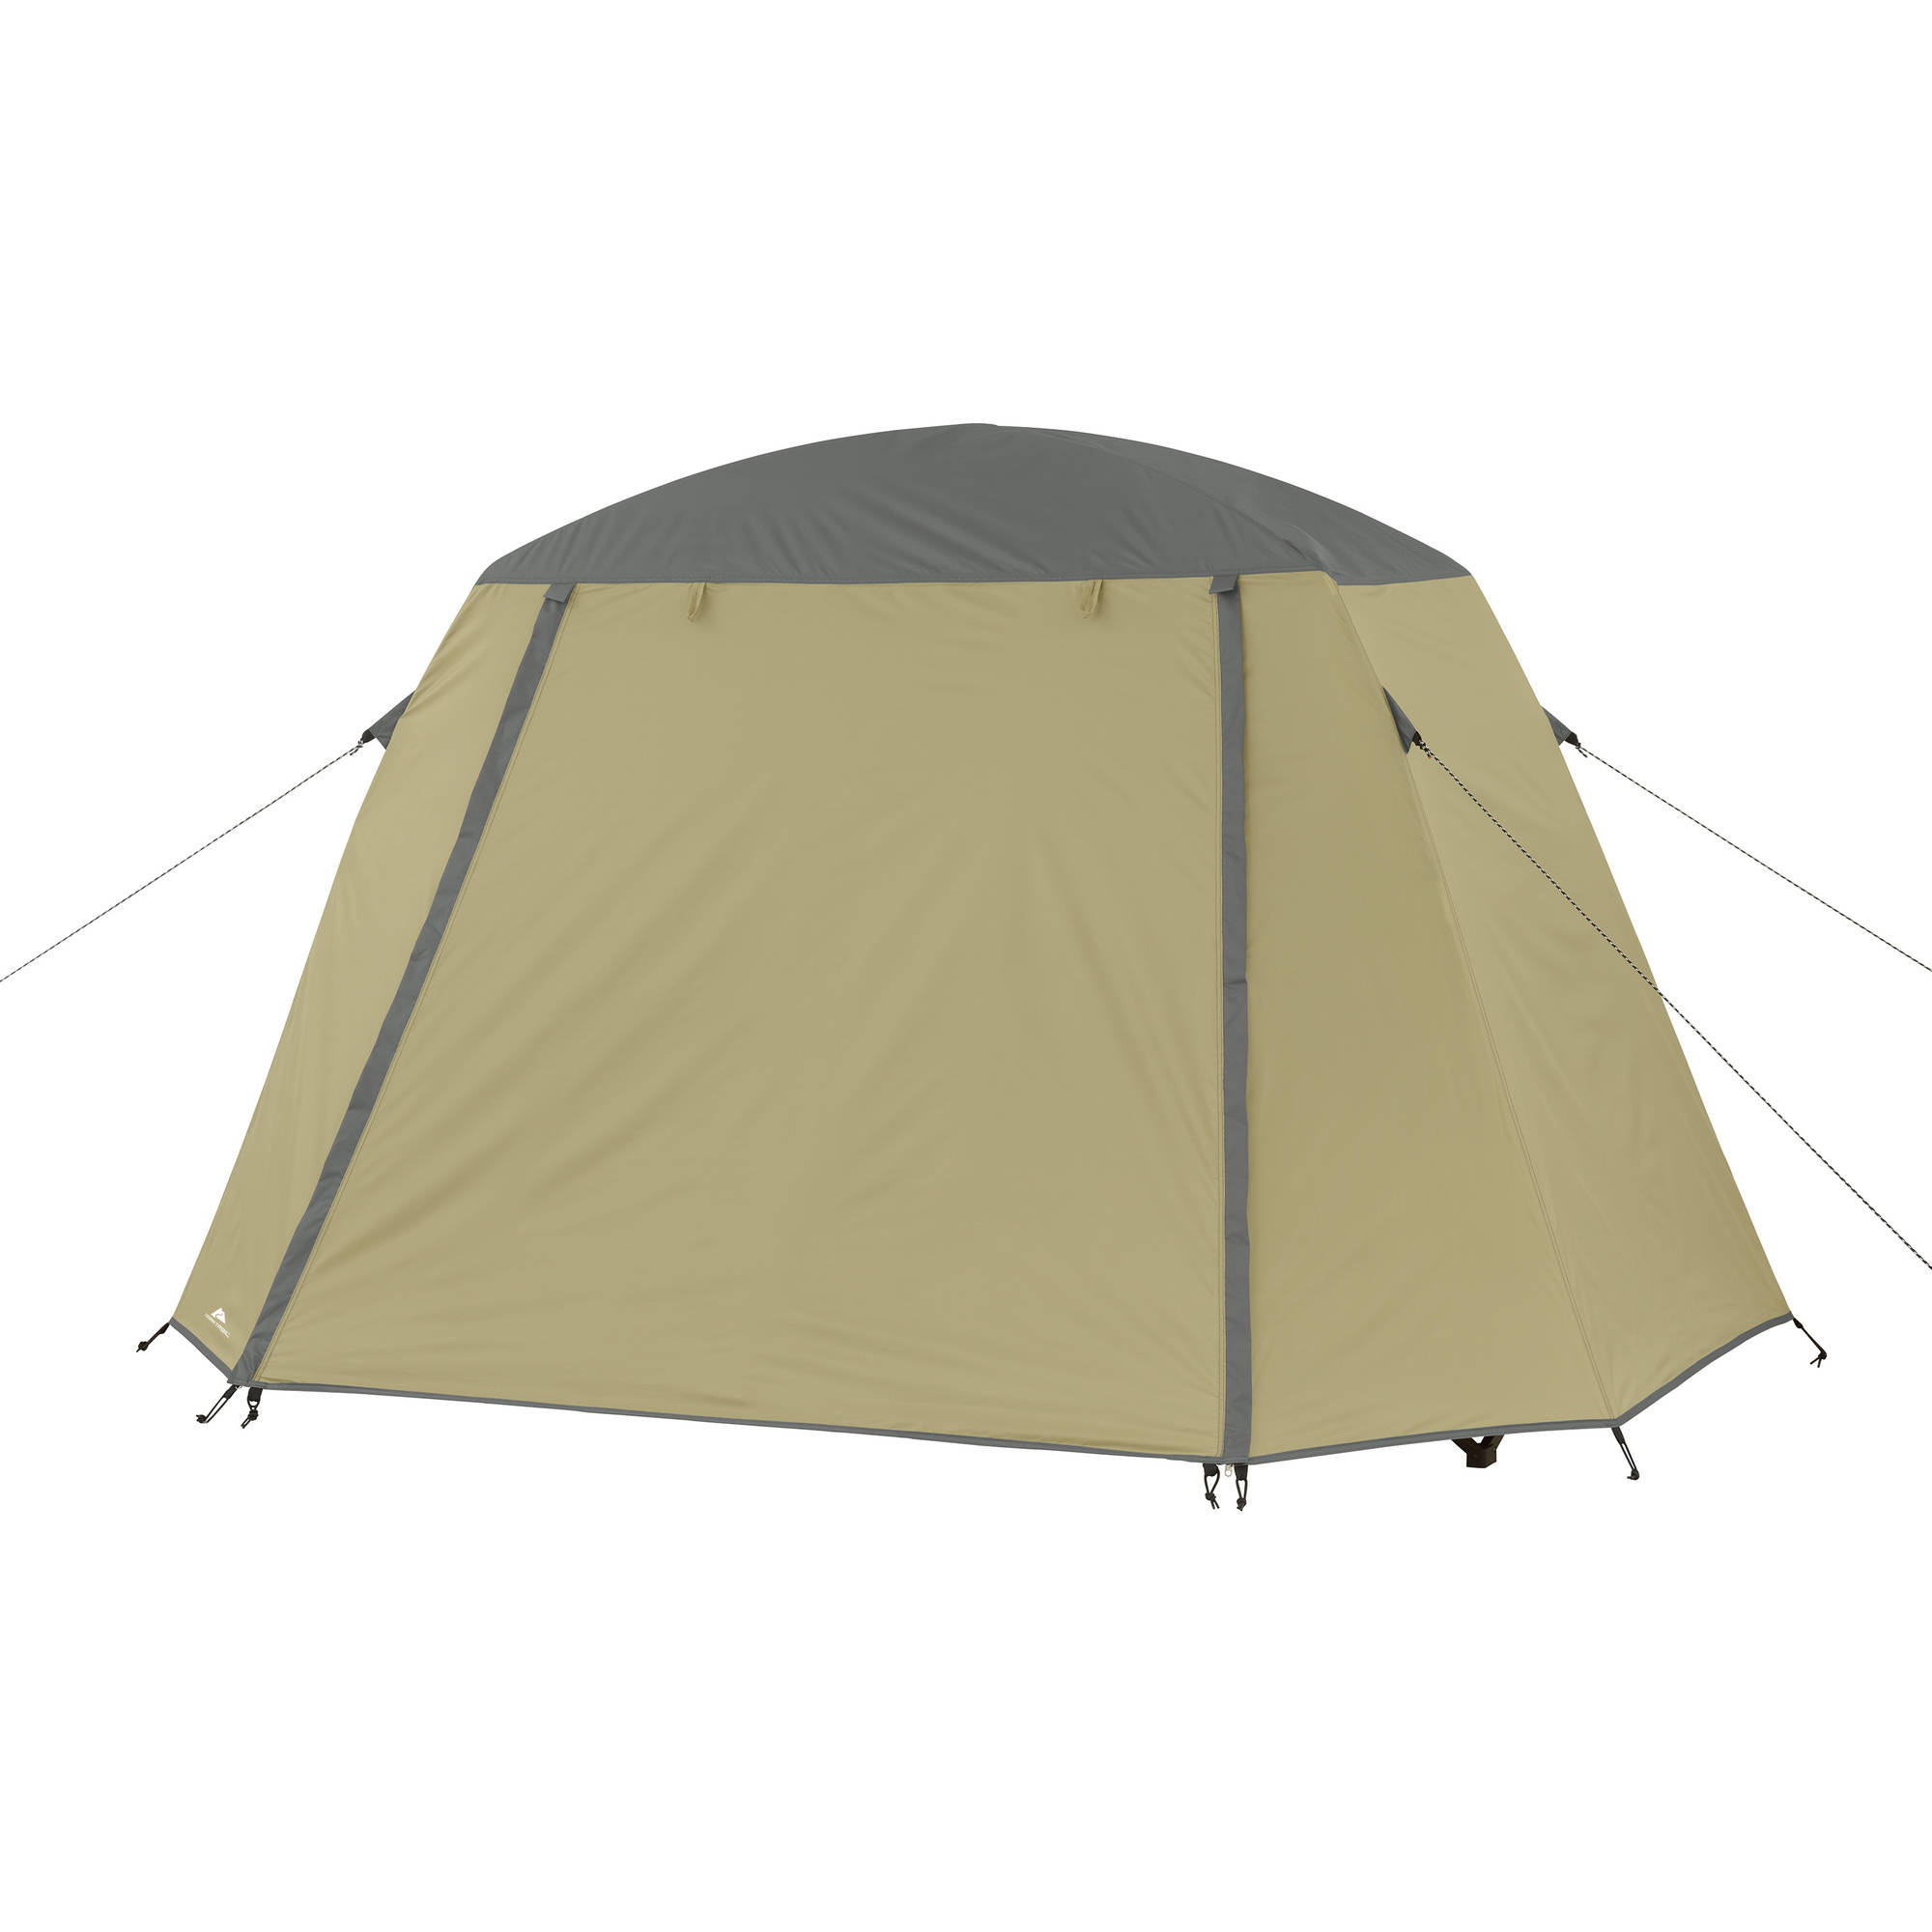 Ozark Trail One-Person Cot Tent by CAMPVALLEY XIAMEN CO LTD